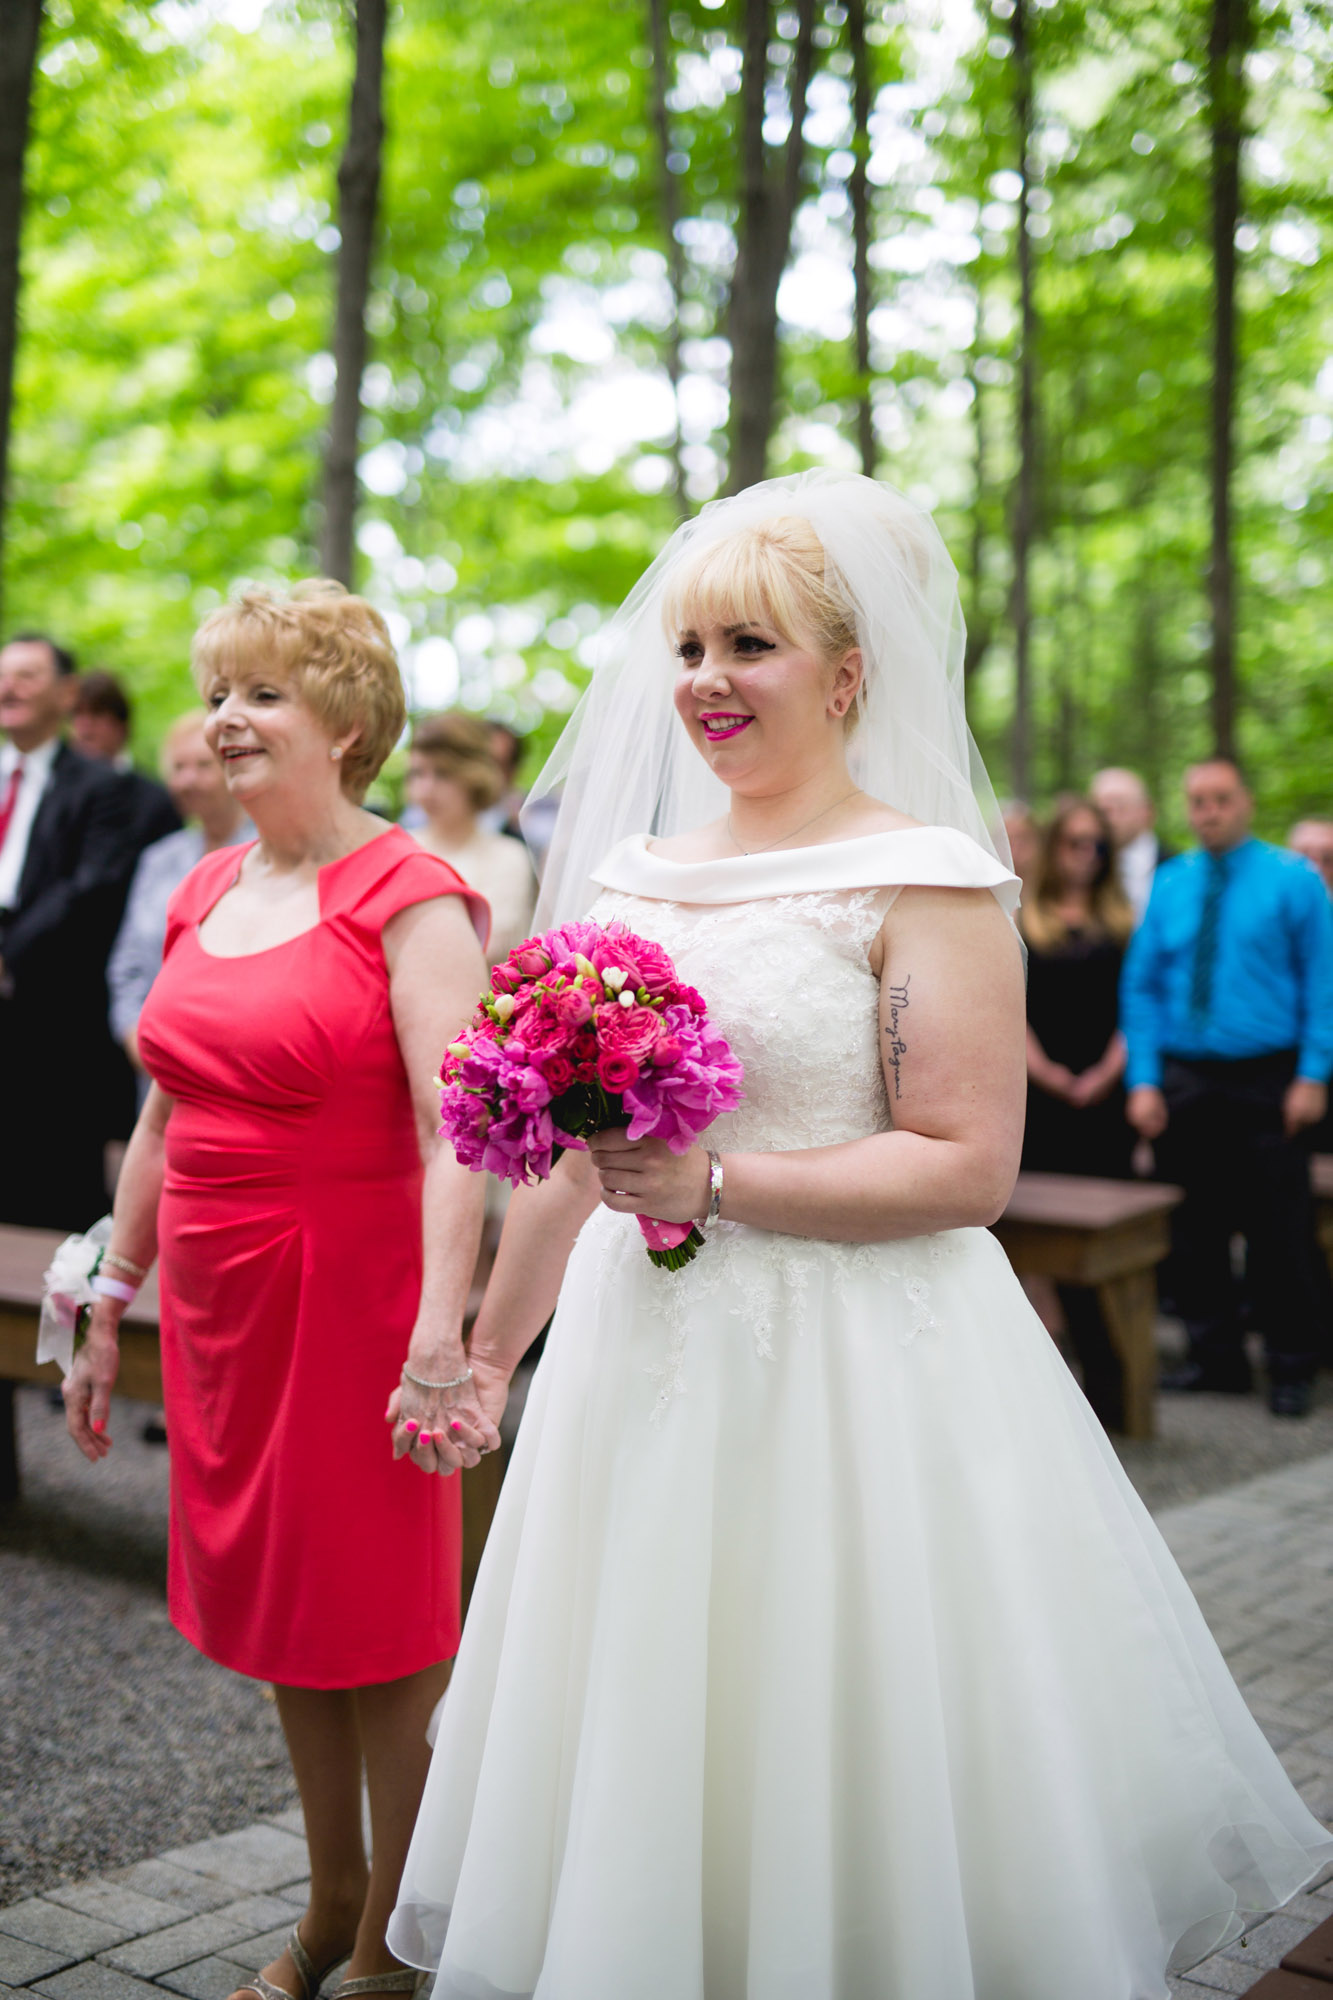 Caitlin & Joe's Stroudsmoor Woodsgate Wedding 42